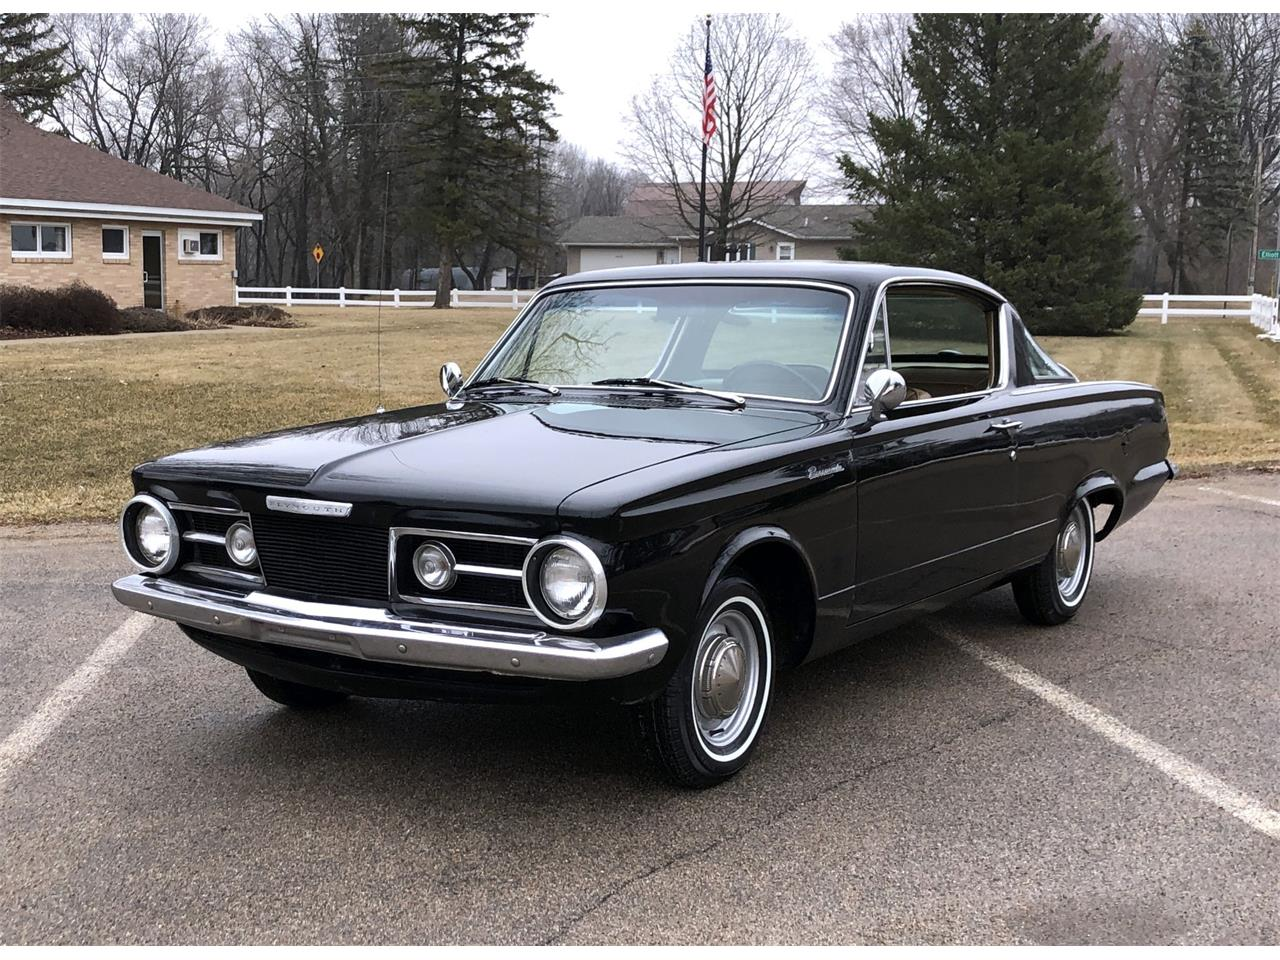 For Sale: 1964 Plymouth Barracuda in Maple Lake, Minnesota